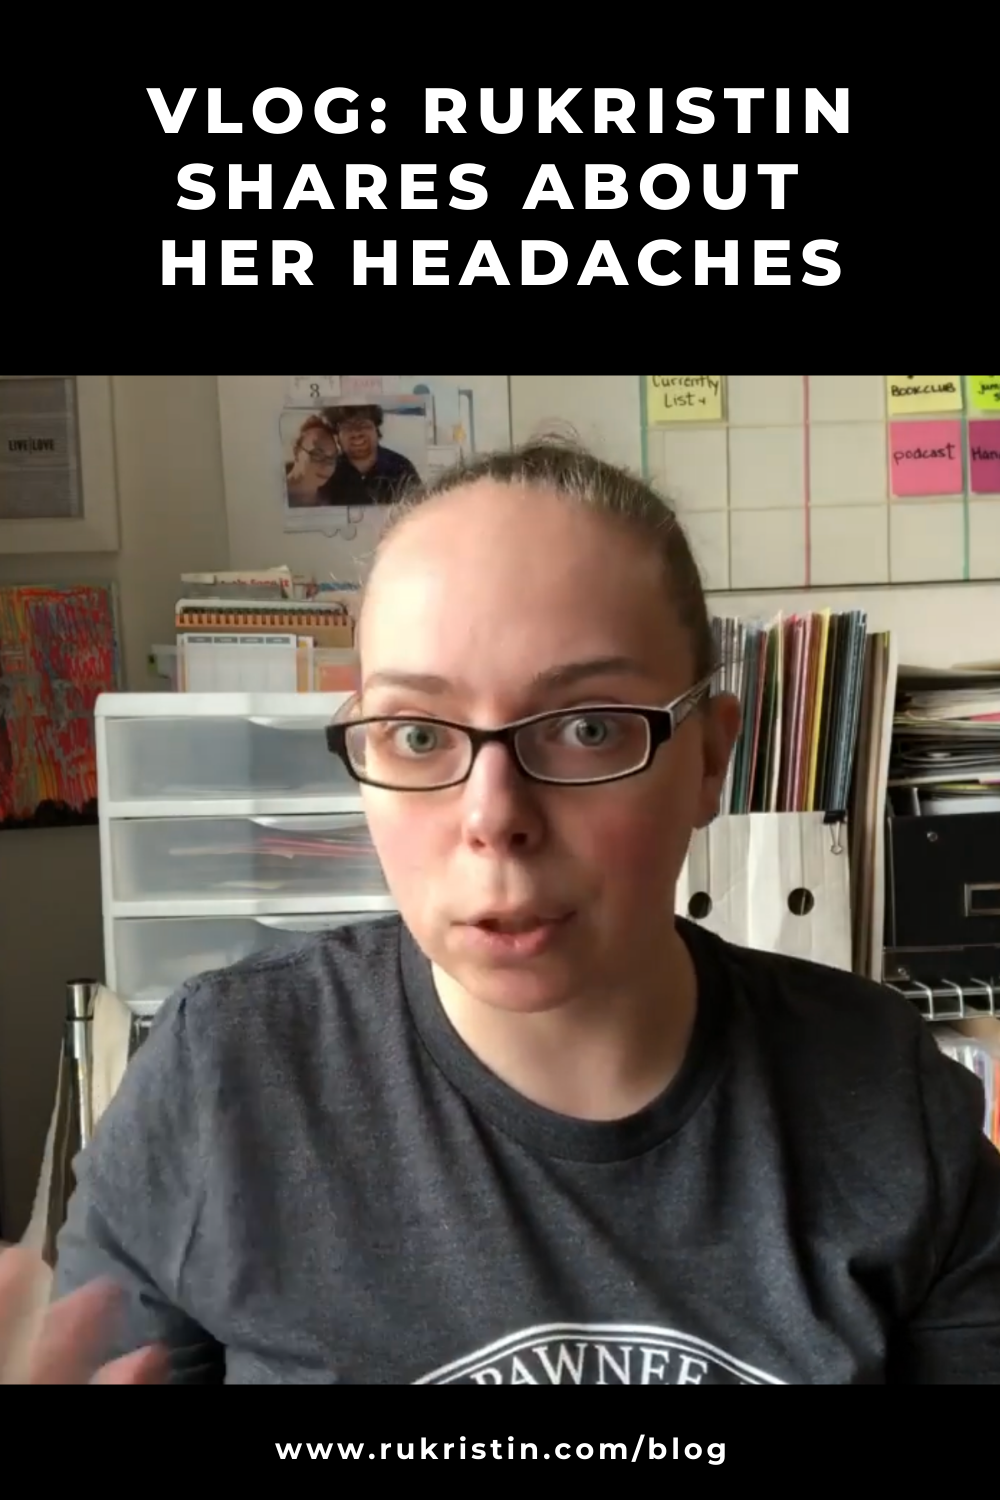 Vlog: rukristin shares about her headaches with photo of rukristin